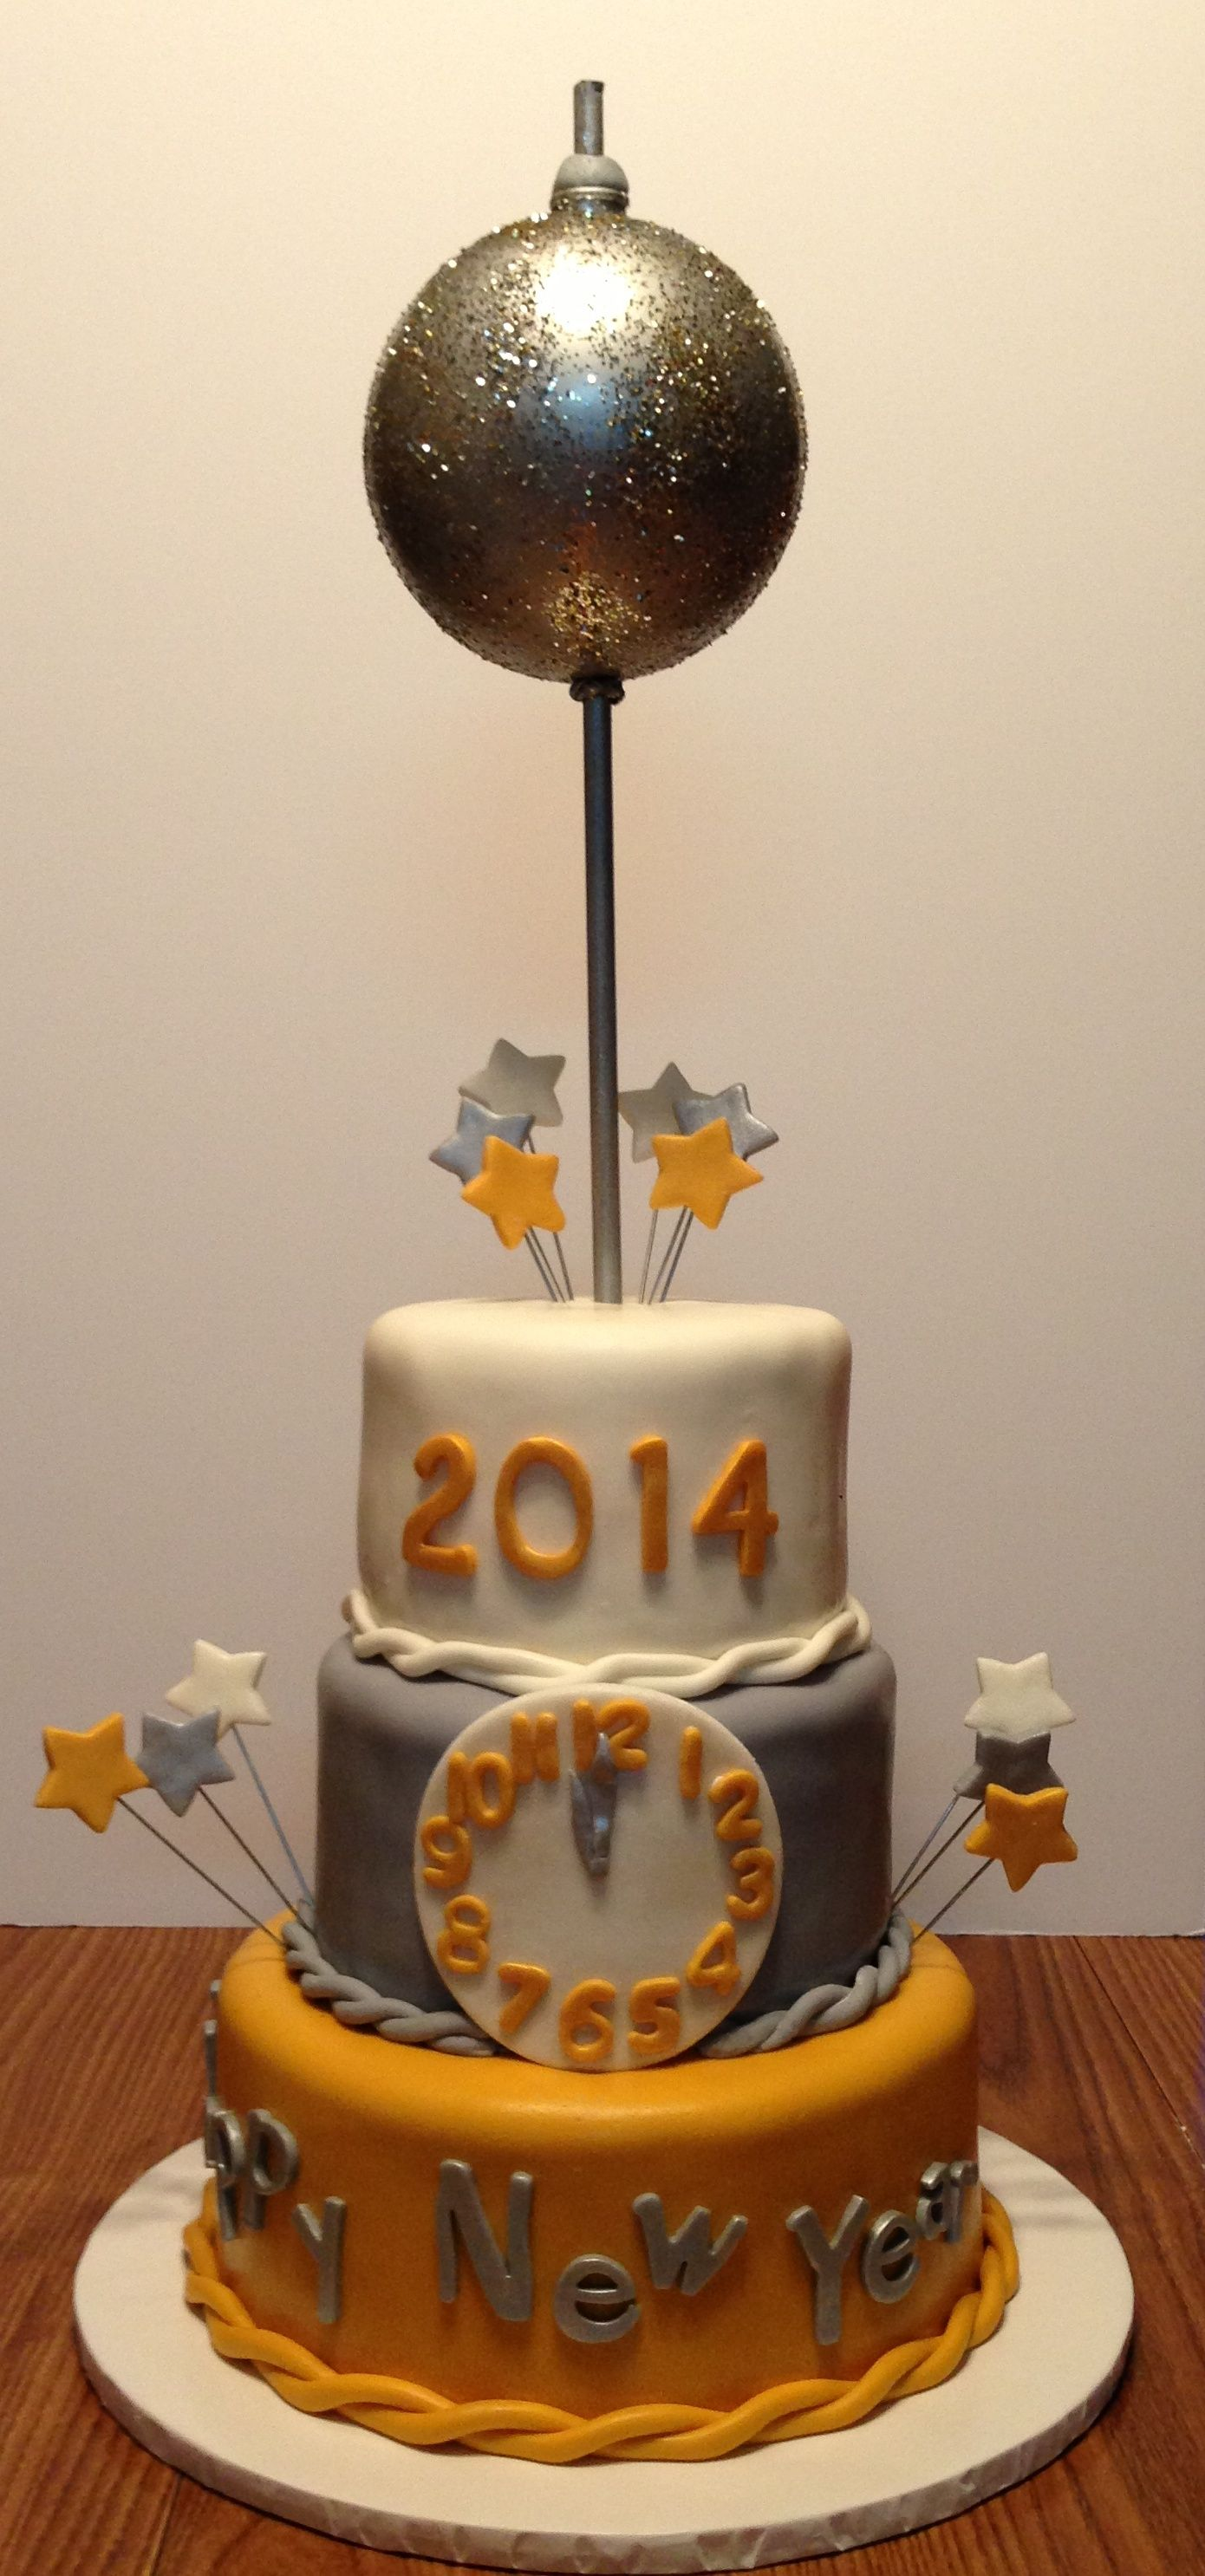 Happy New Year Ball Drop Cake Mm Fondant Covered Tiers